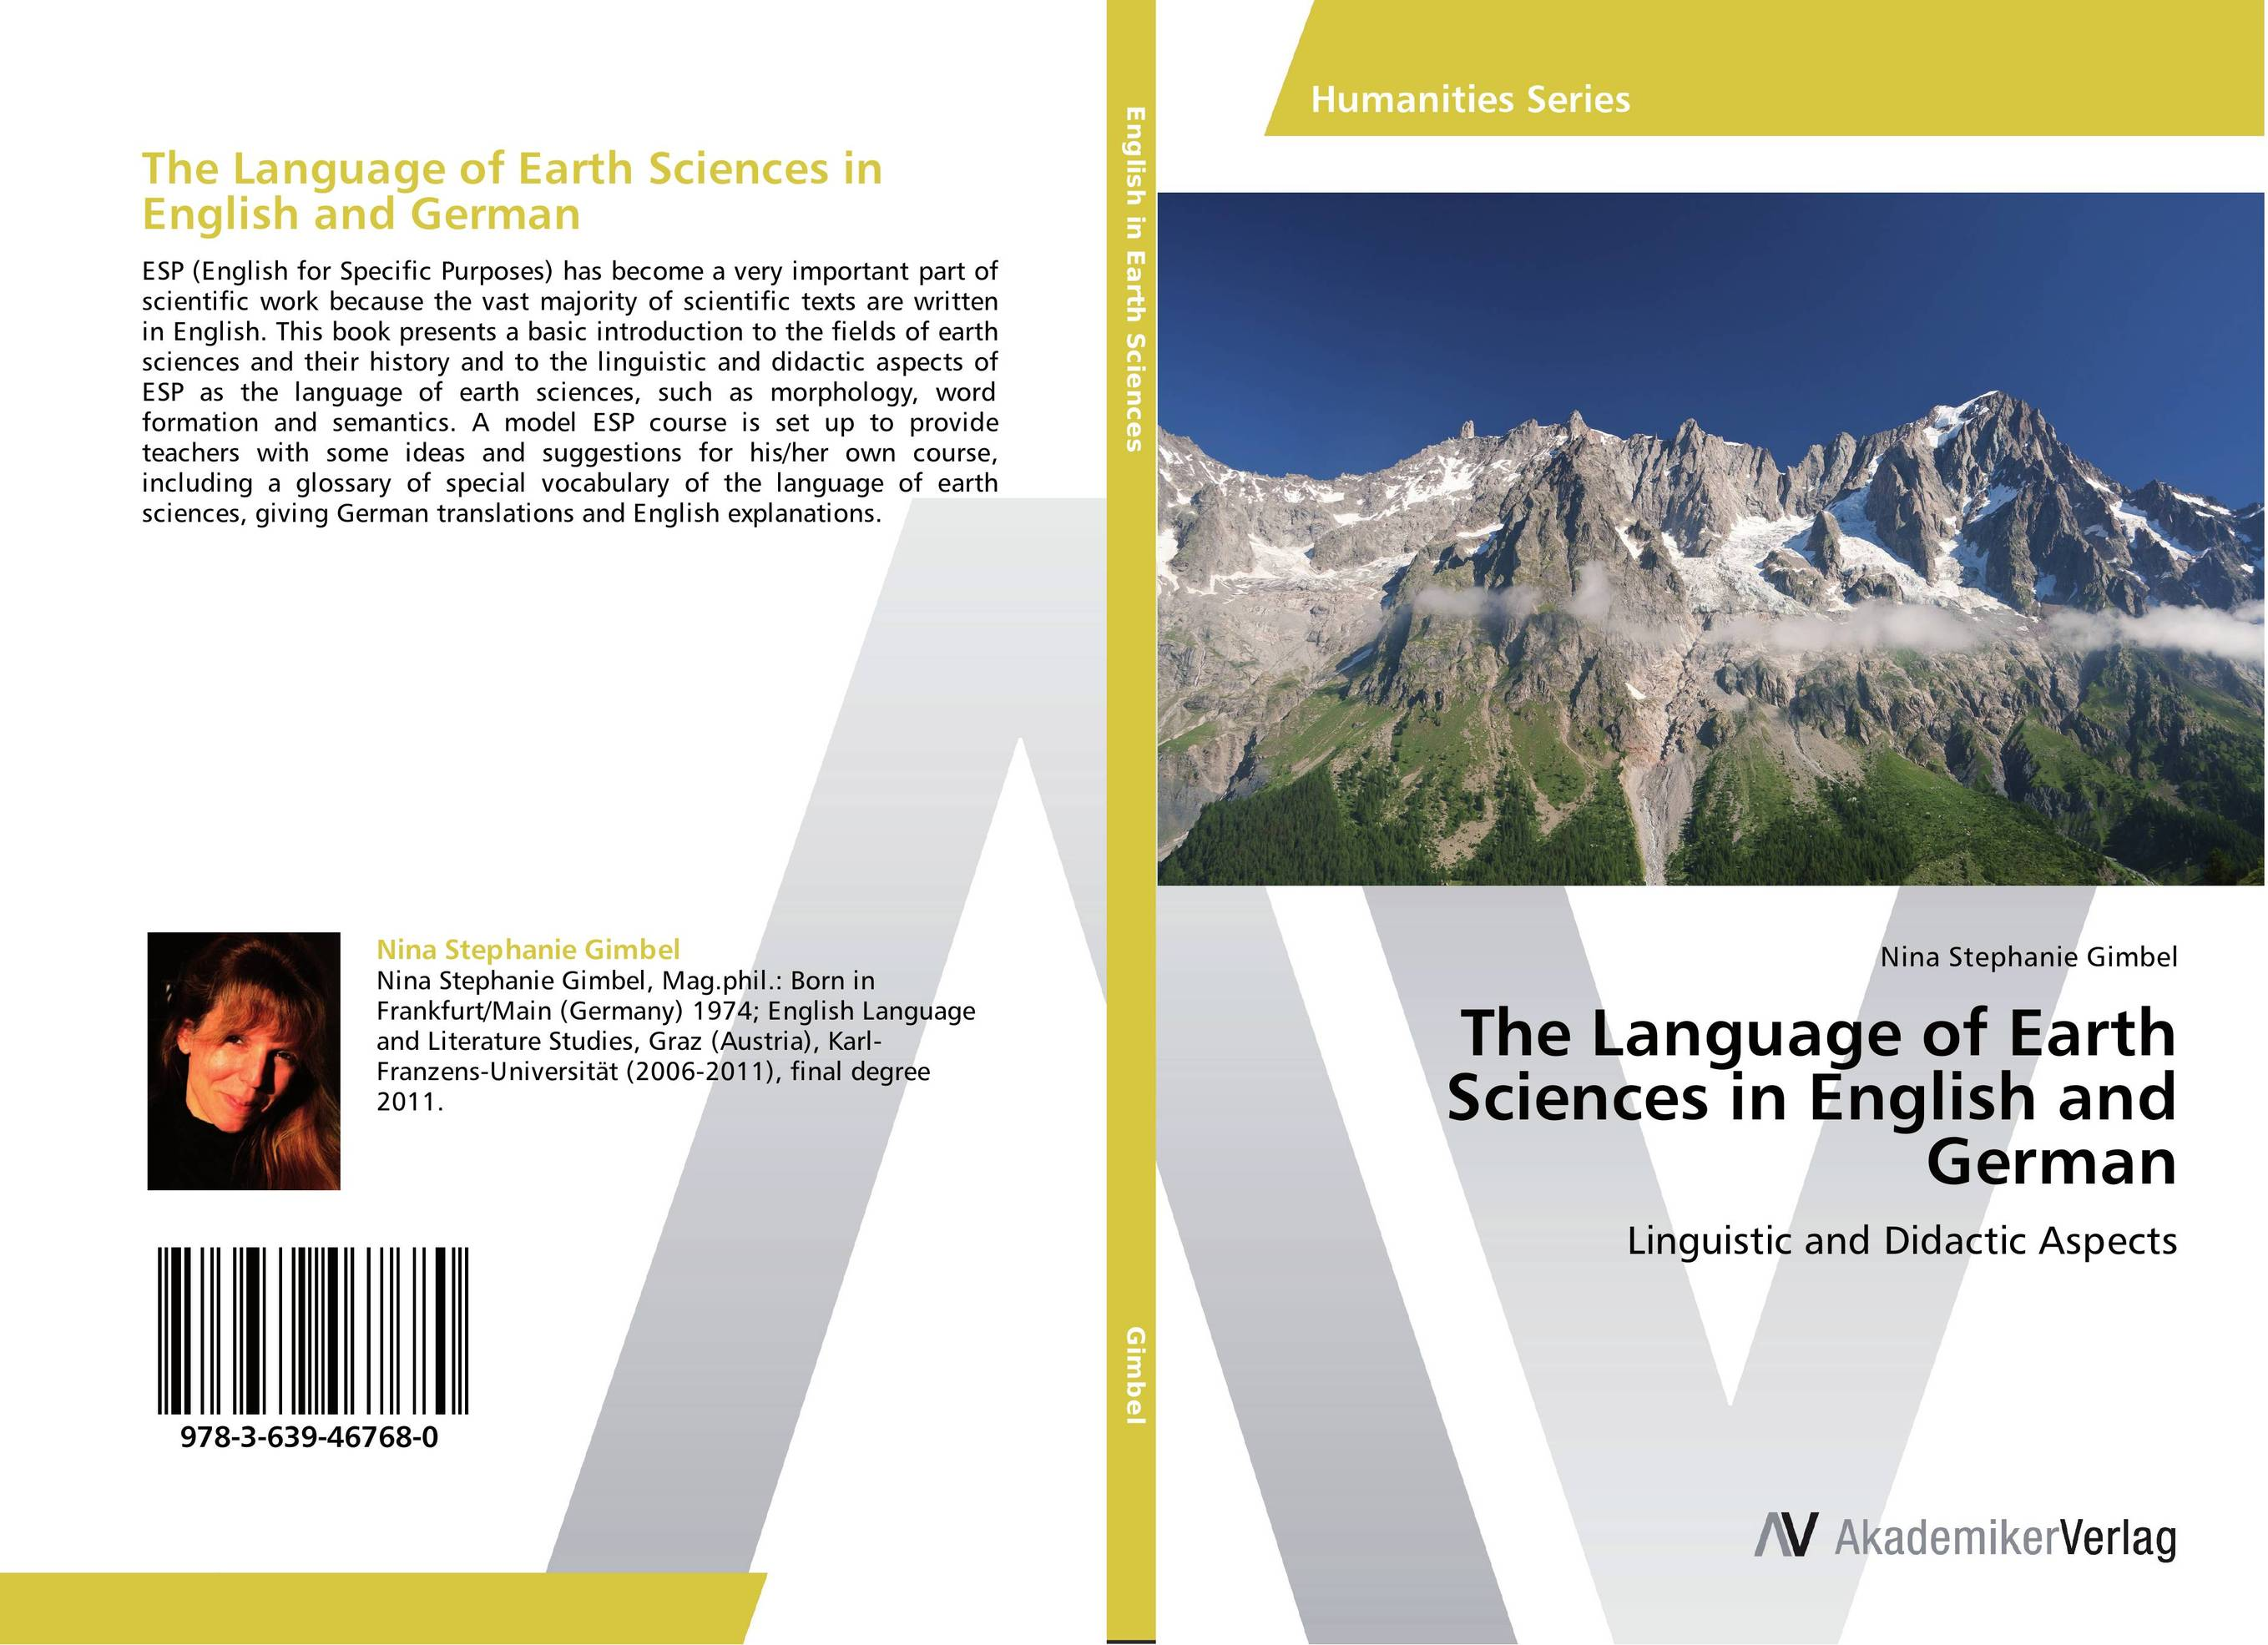 The Language of Earth Sciences in English and German fred perry fred perry g8776 129